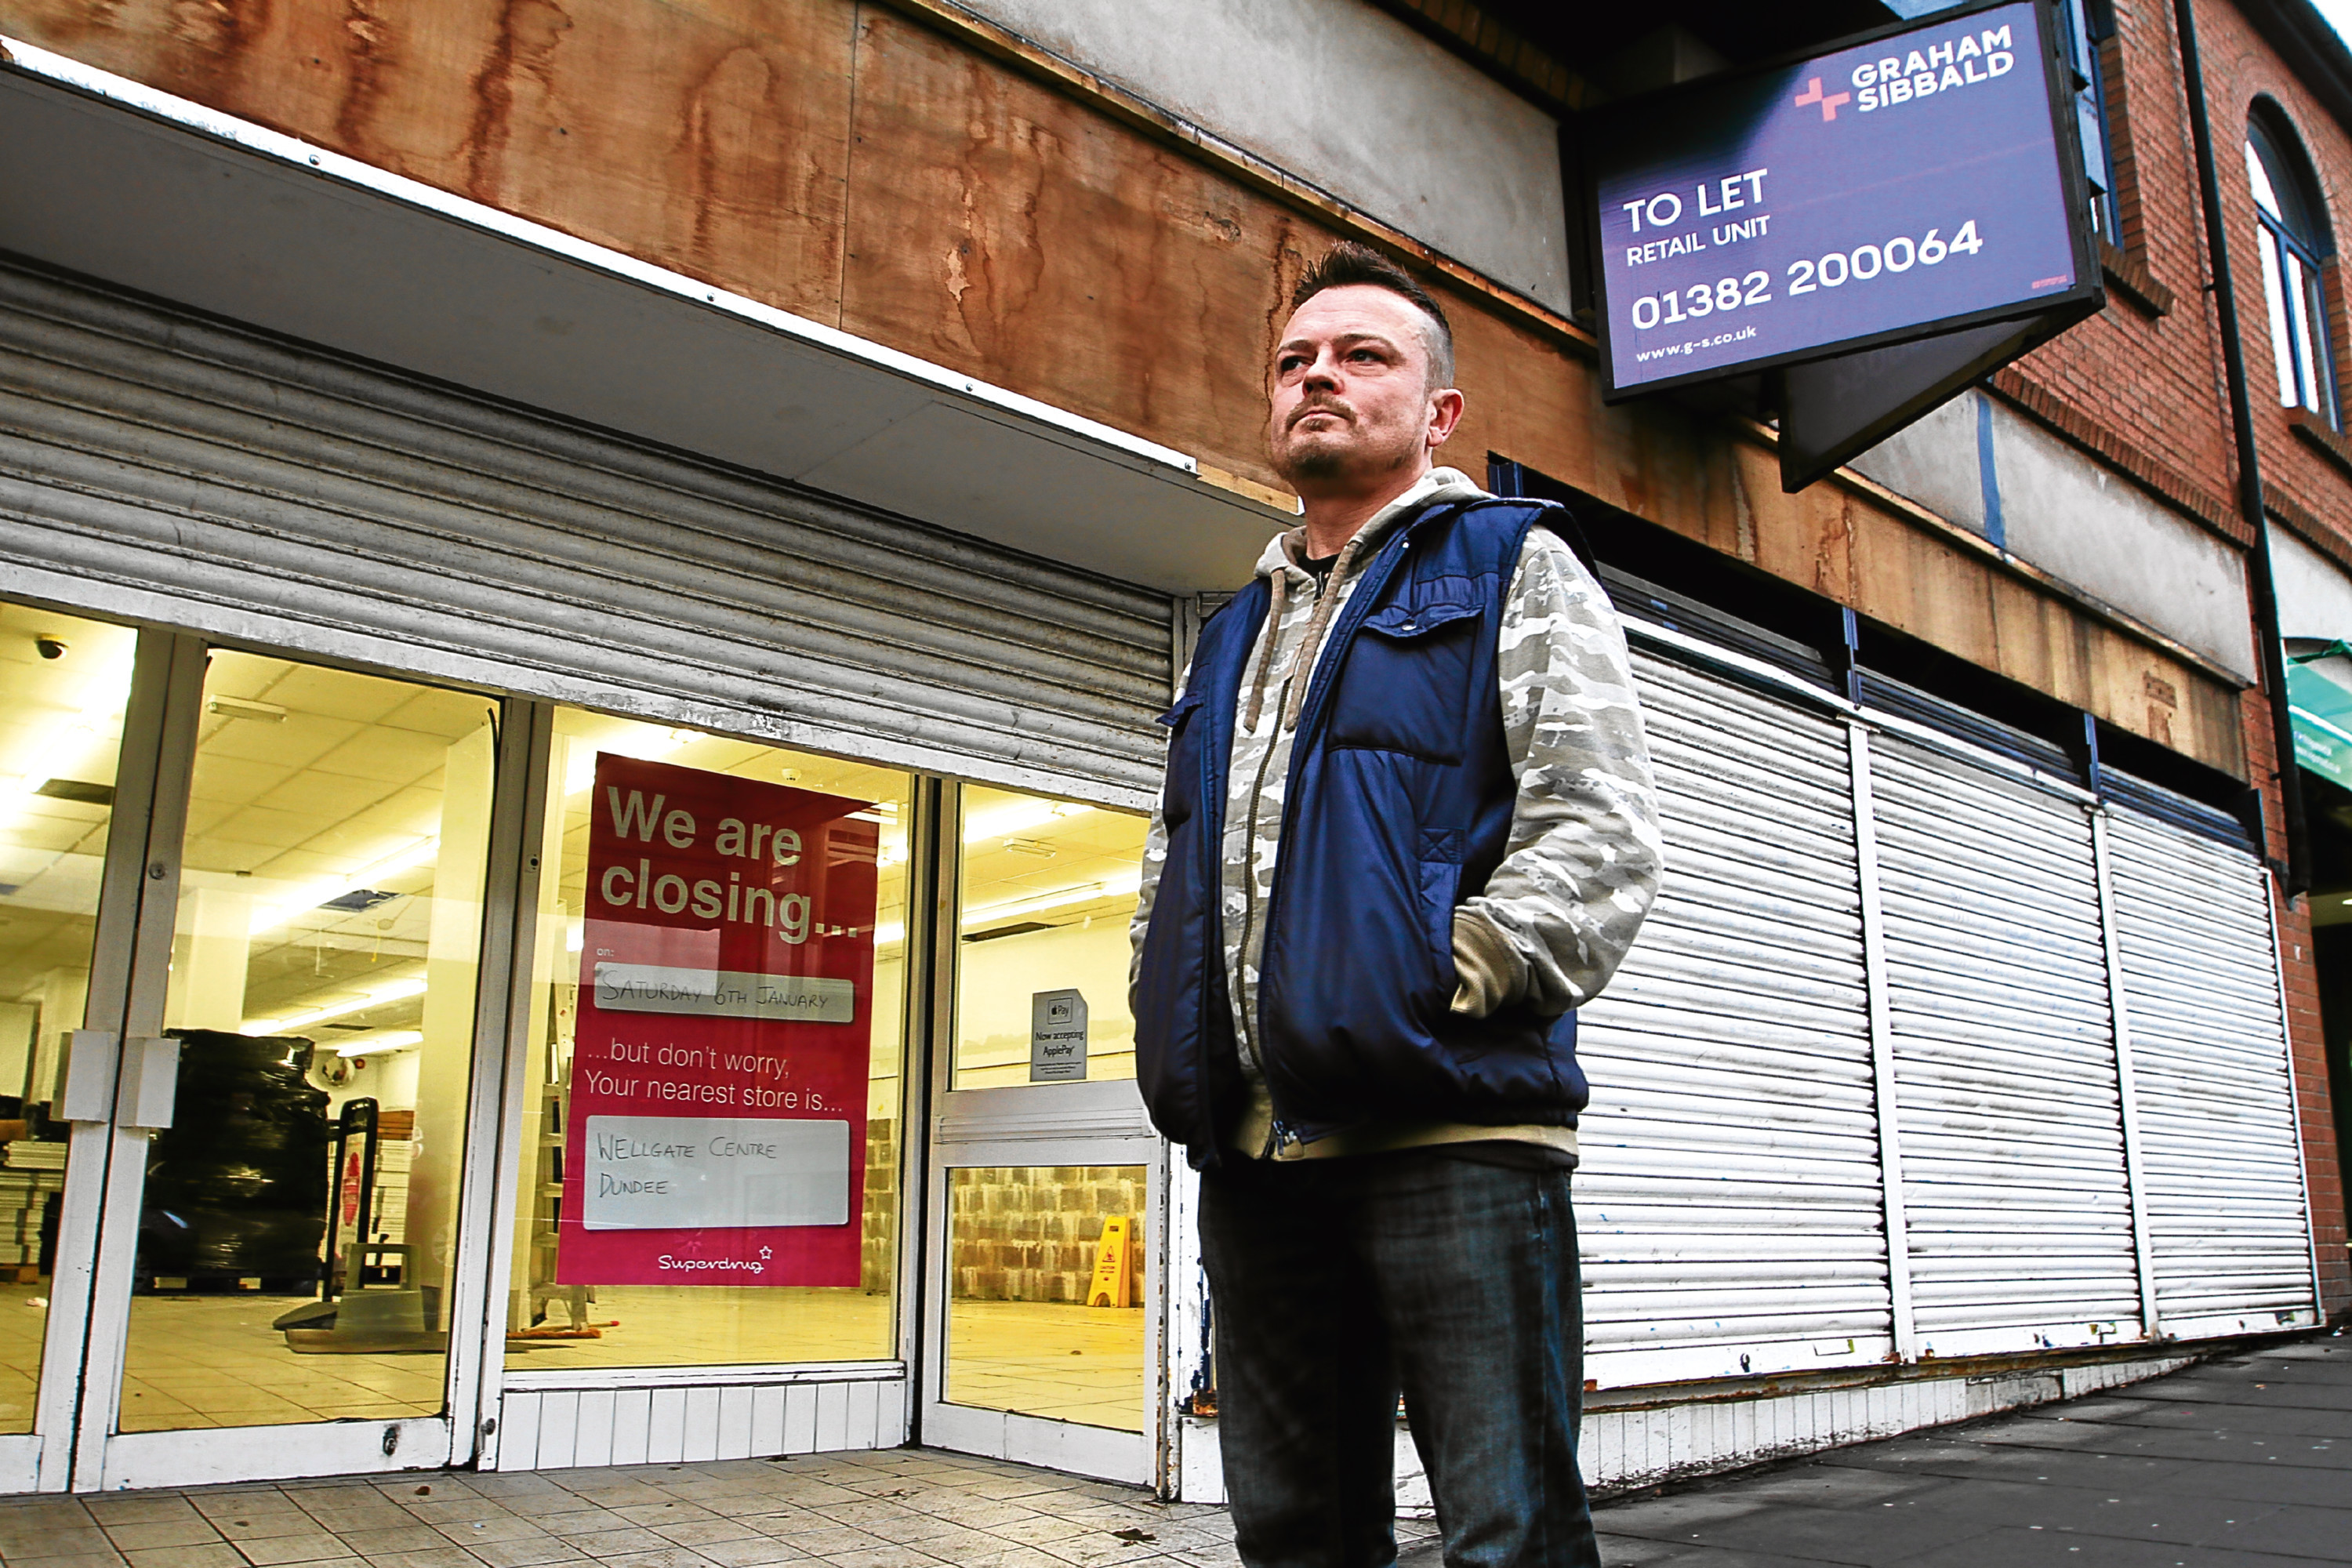 Myles McCallum outside the now empty Superdrug.